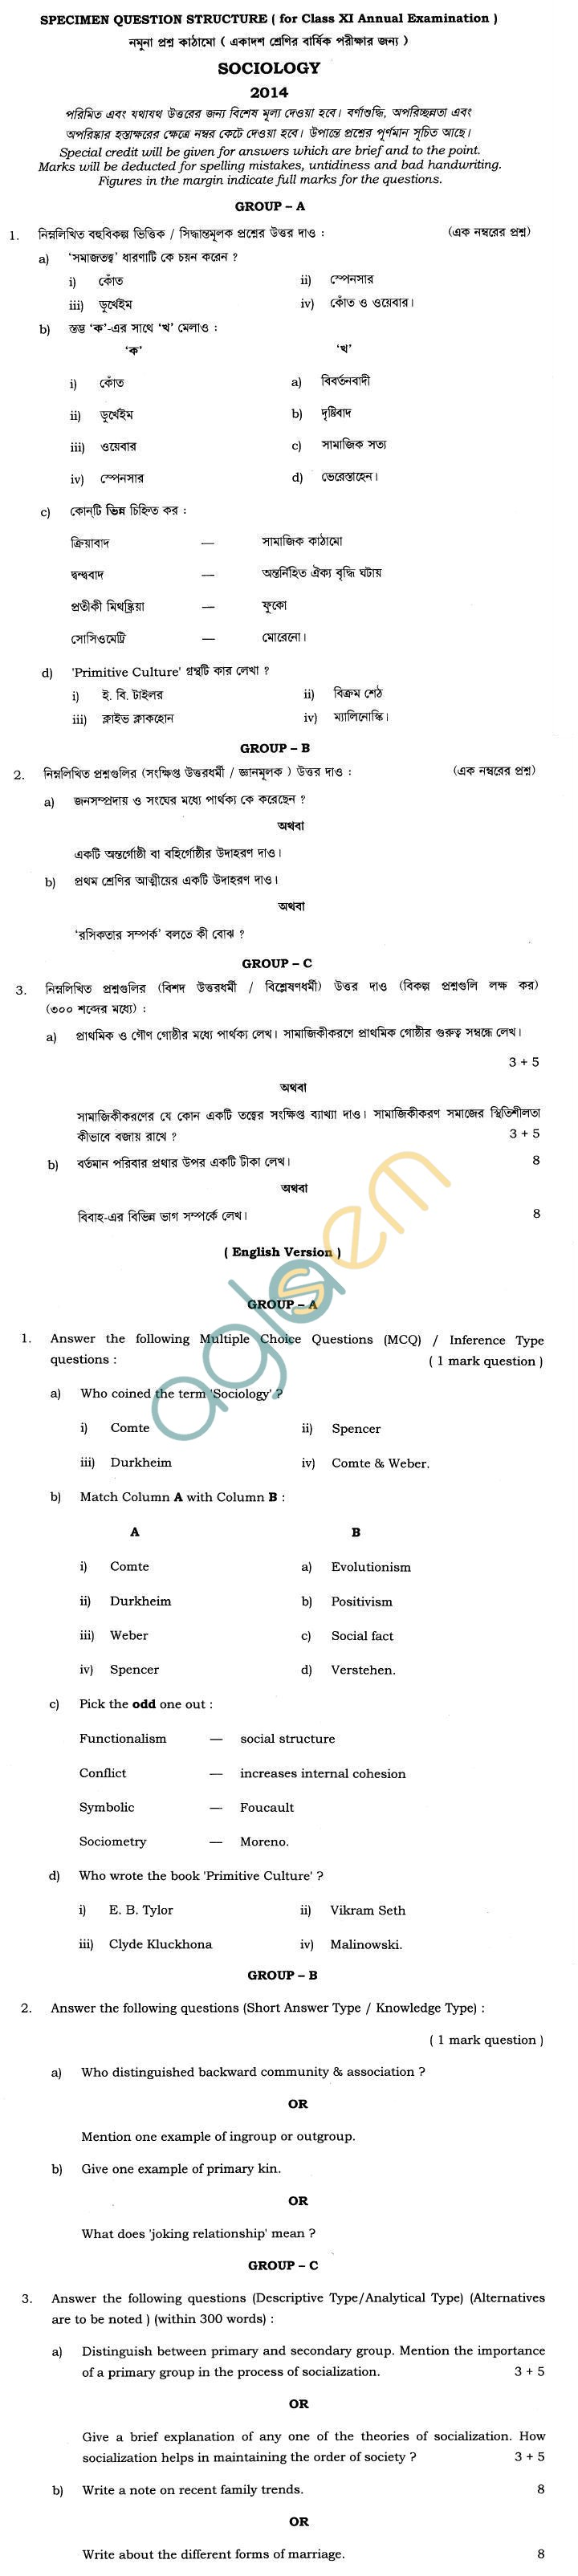 West Bengal Board Sample Question Paper for Class 11 -Sociology